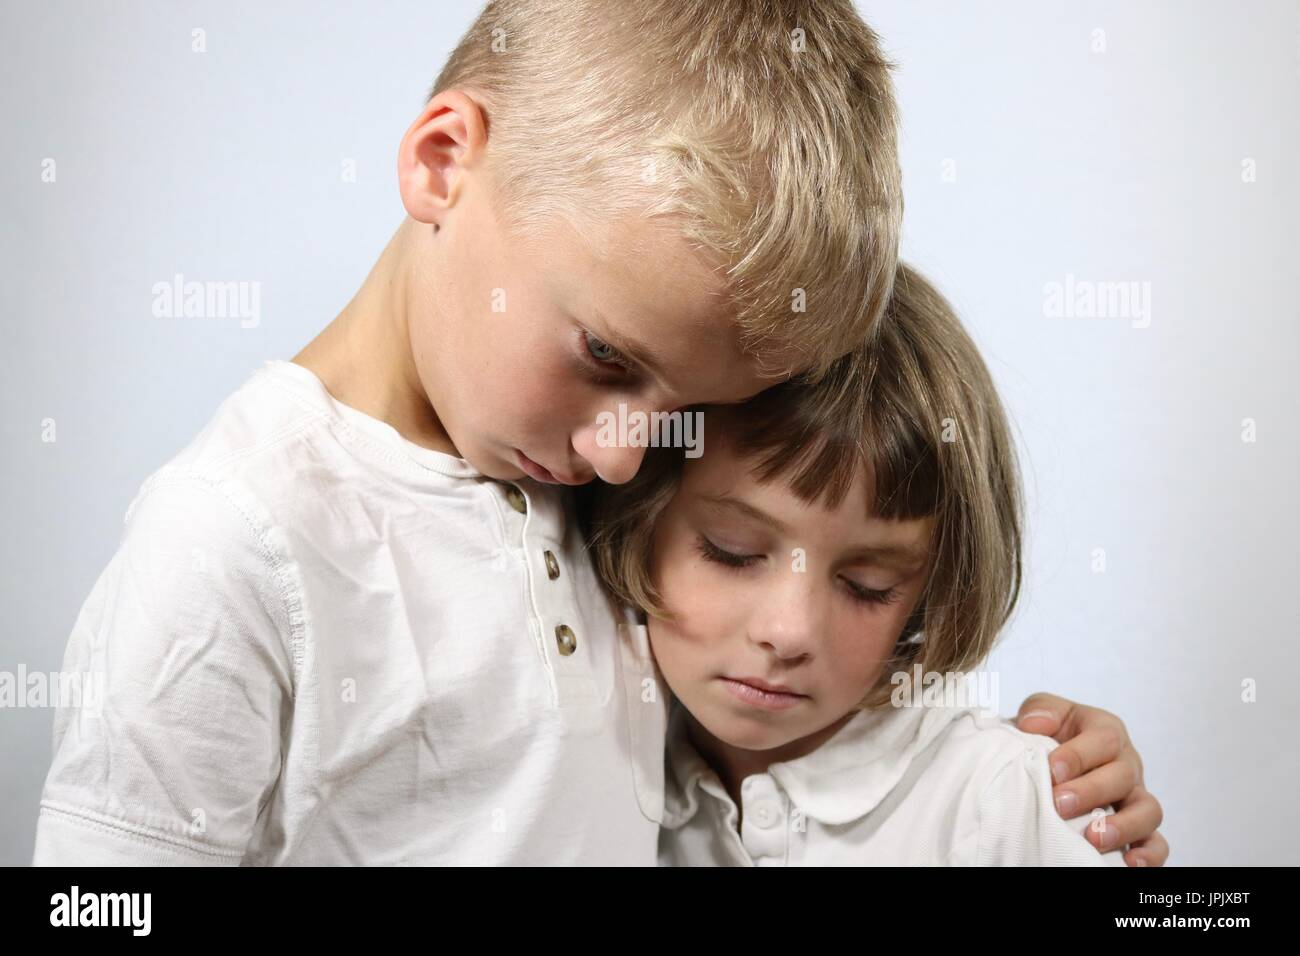 Portrait of grieving young children in an embrace - Stock Image